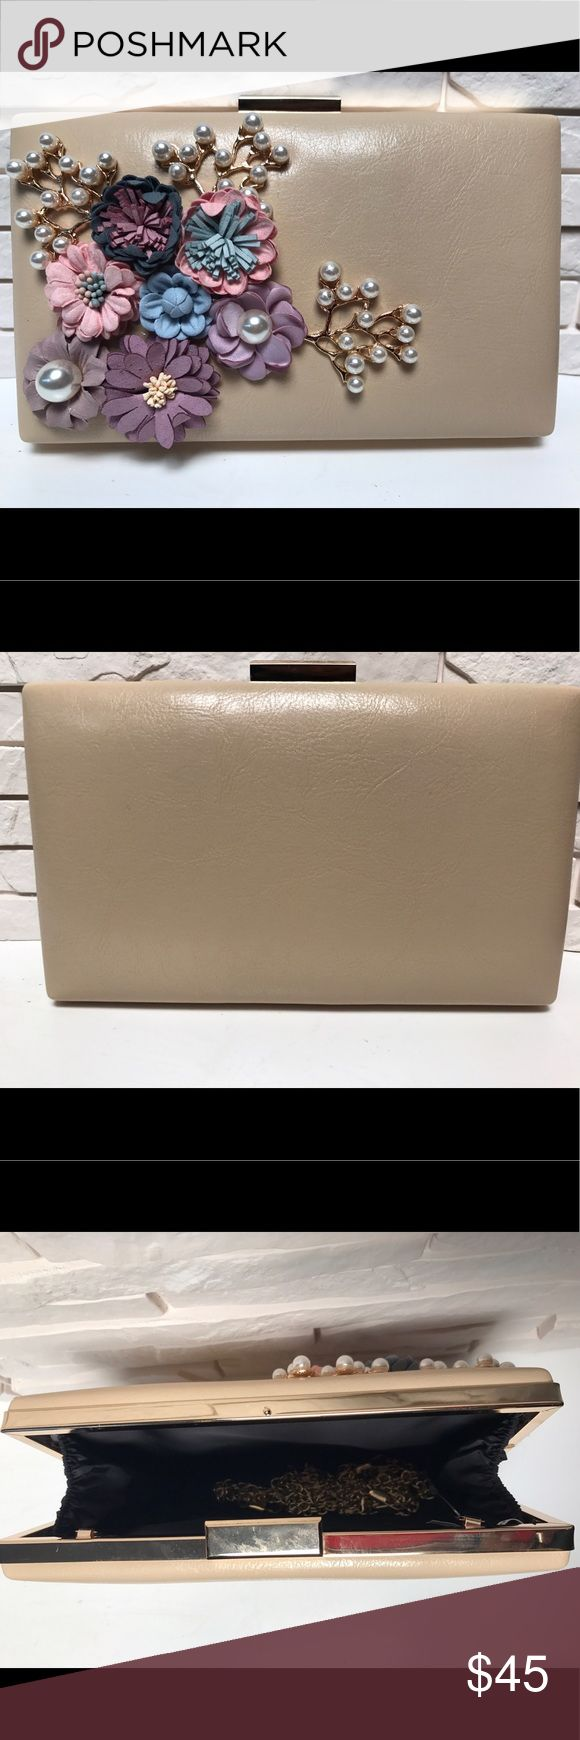 """Fleur Clutch (Taupe/Beige) Beautiful snap Clutch with gold hardware. Off-white is perfect for your summer outfits. Adorned with flowers as pearls. Measures H: 5"""" / L: 8"""" / W: 2"""" Bags Clutches & Wristlets"""